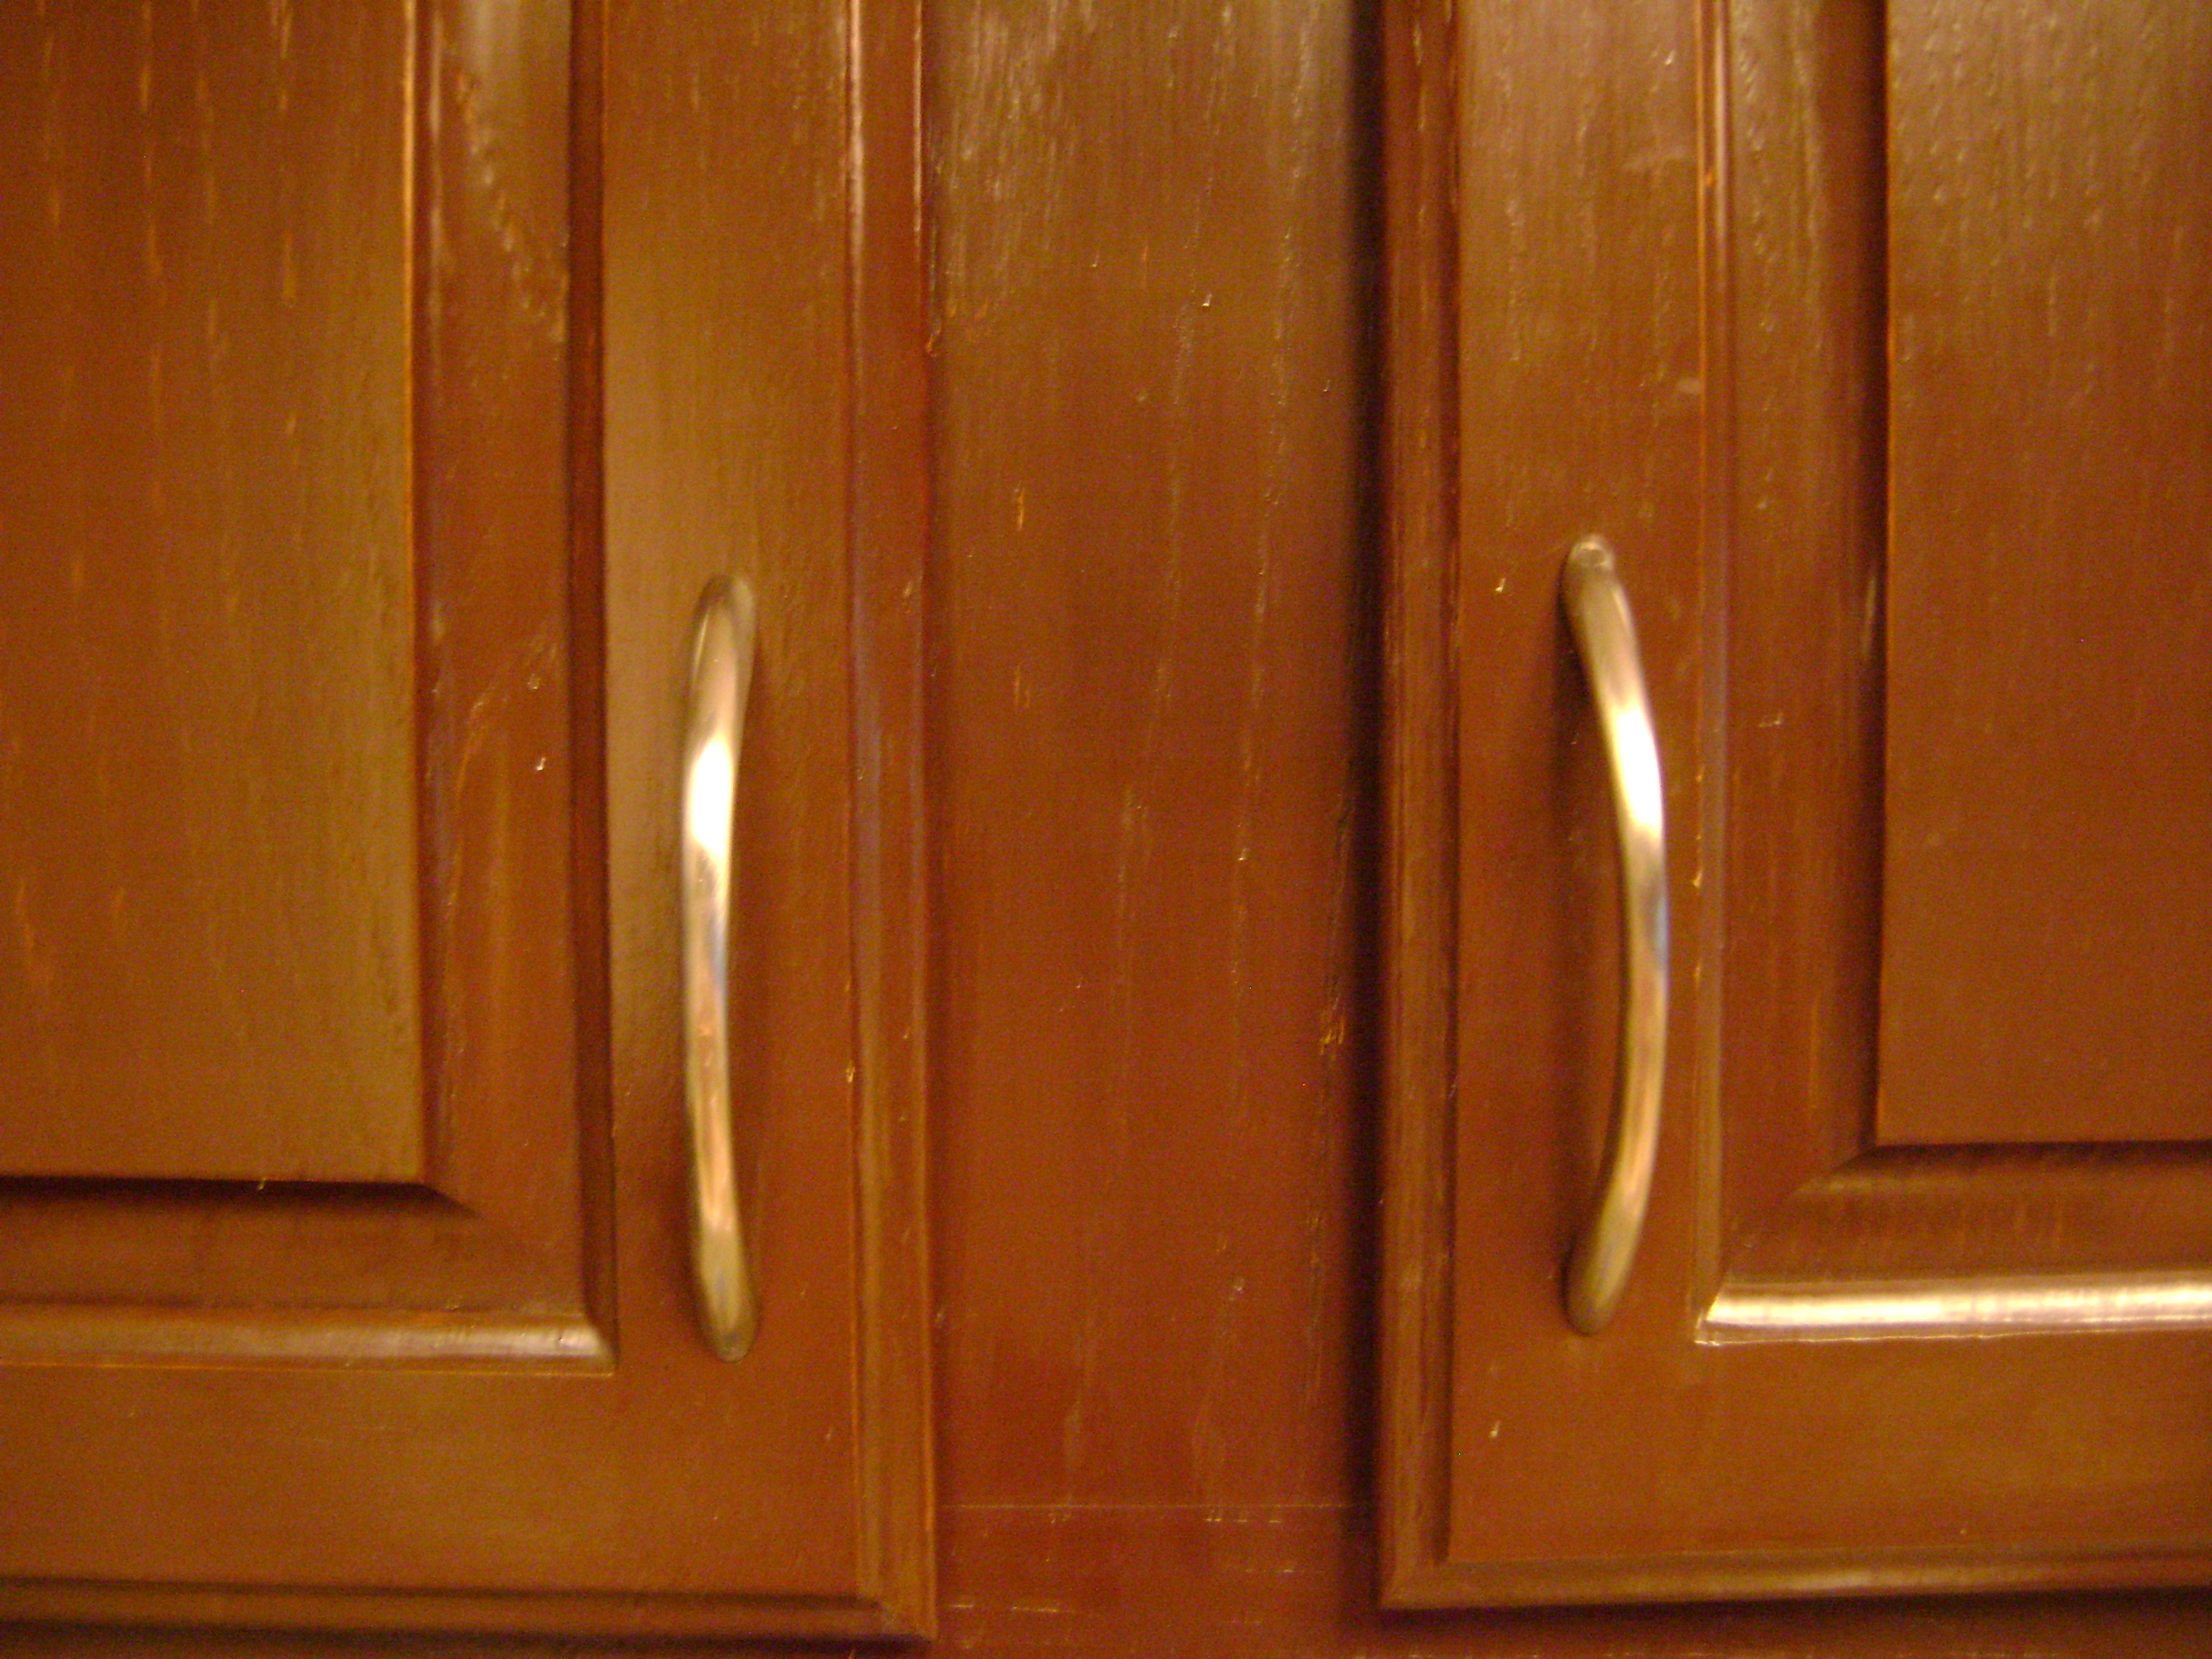 Luxury home design furniture kitchen cupboard door handles for Kitchen cabinets hardware